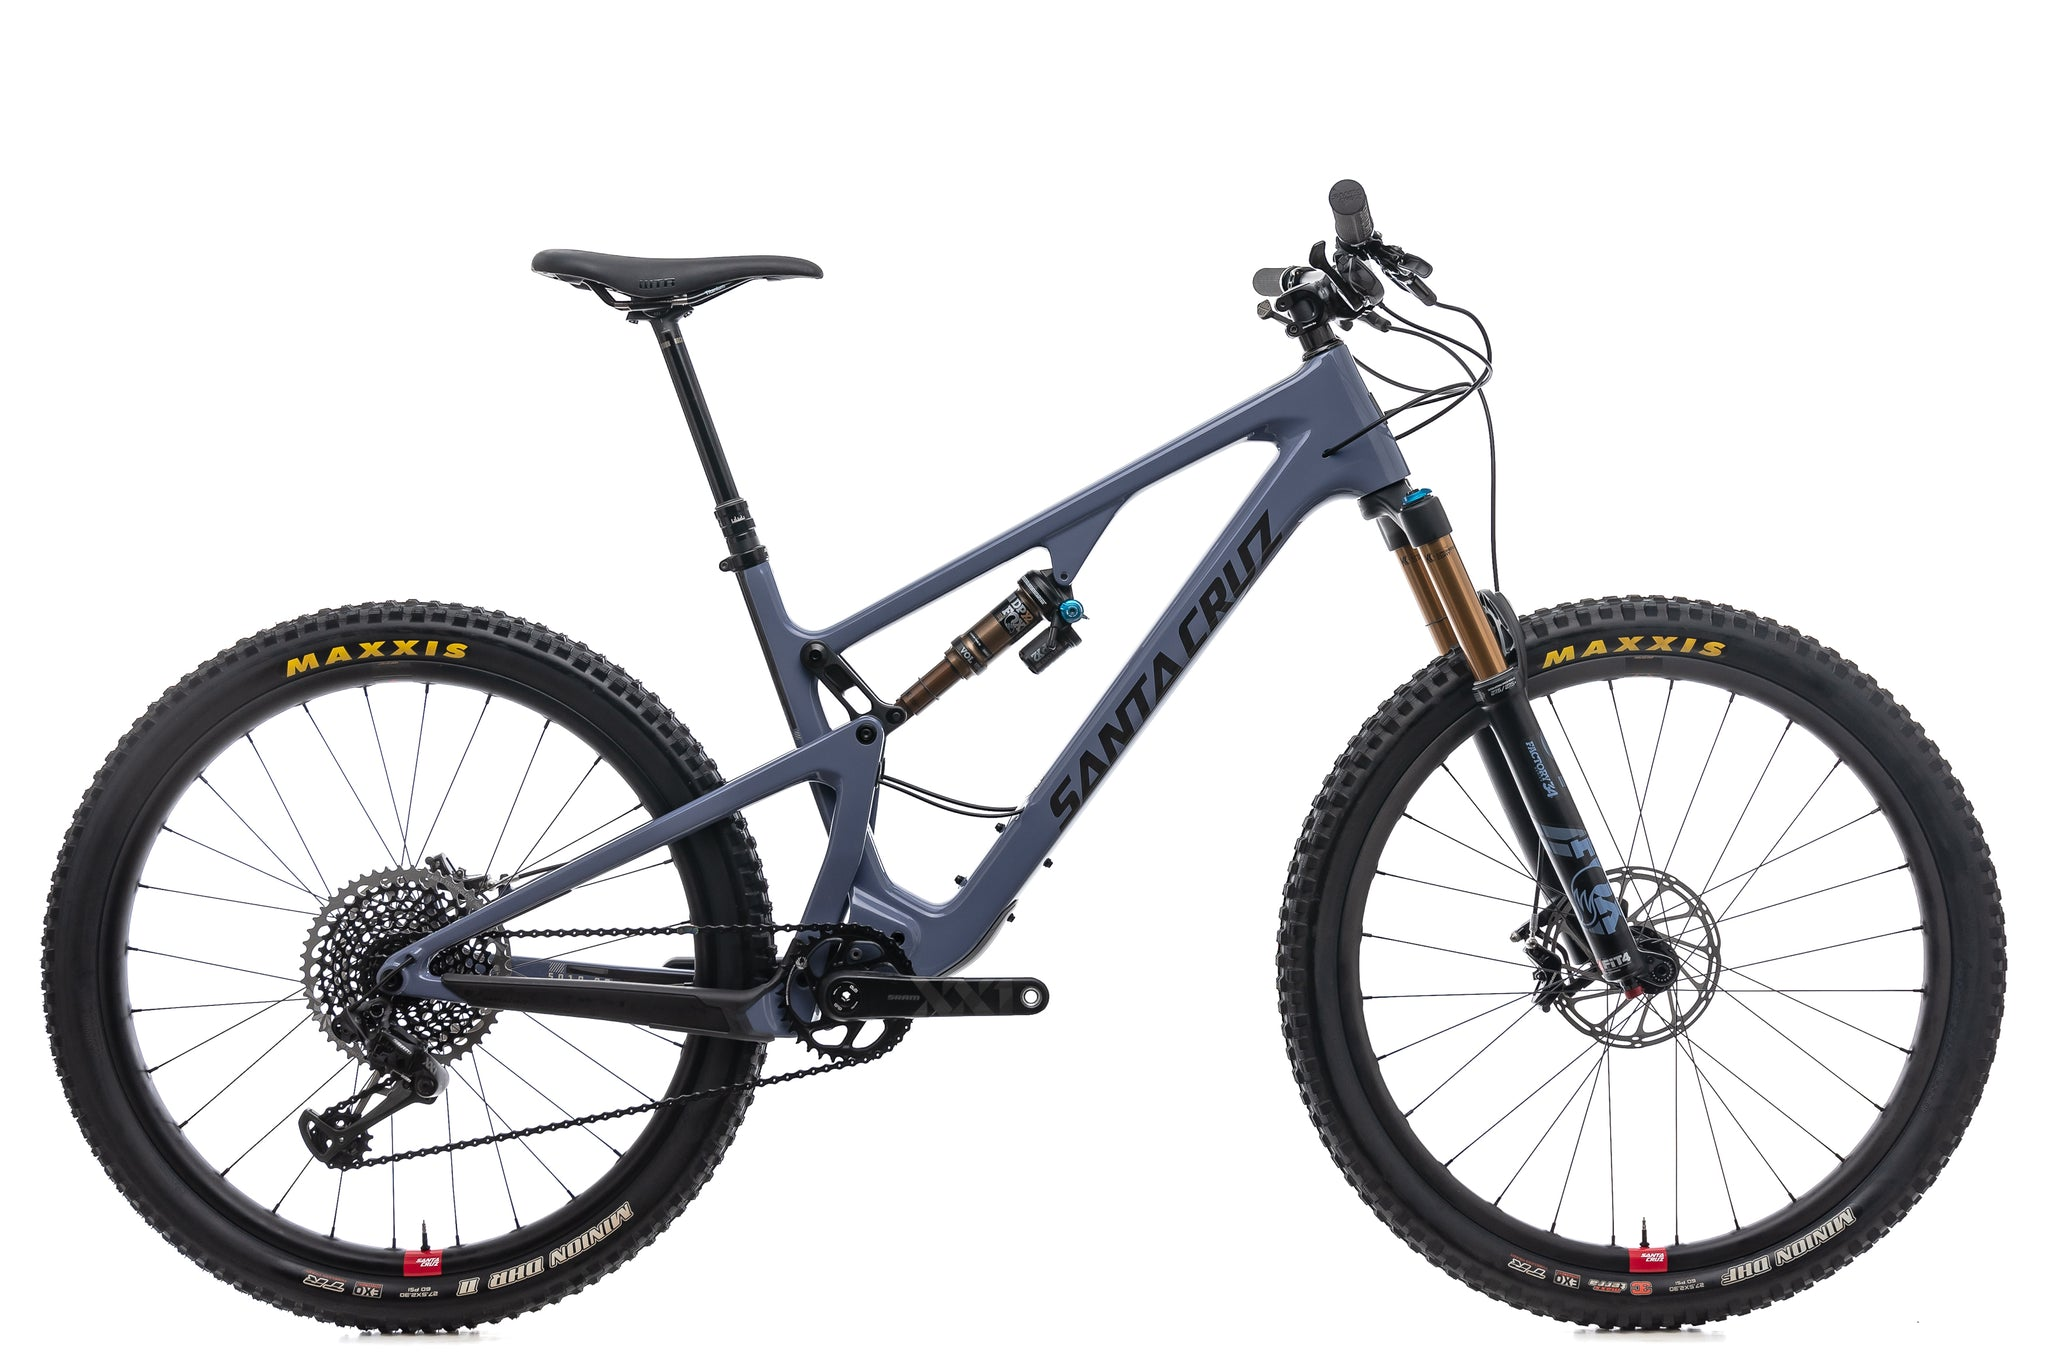 Santa Cruz 5010 Used Mountain Bike